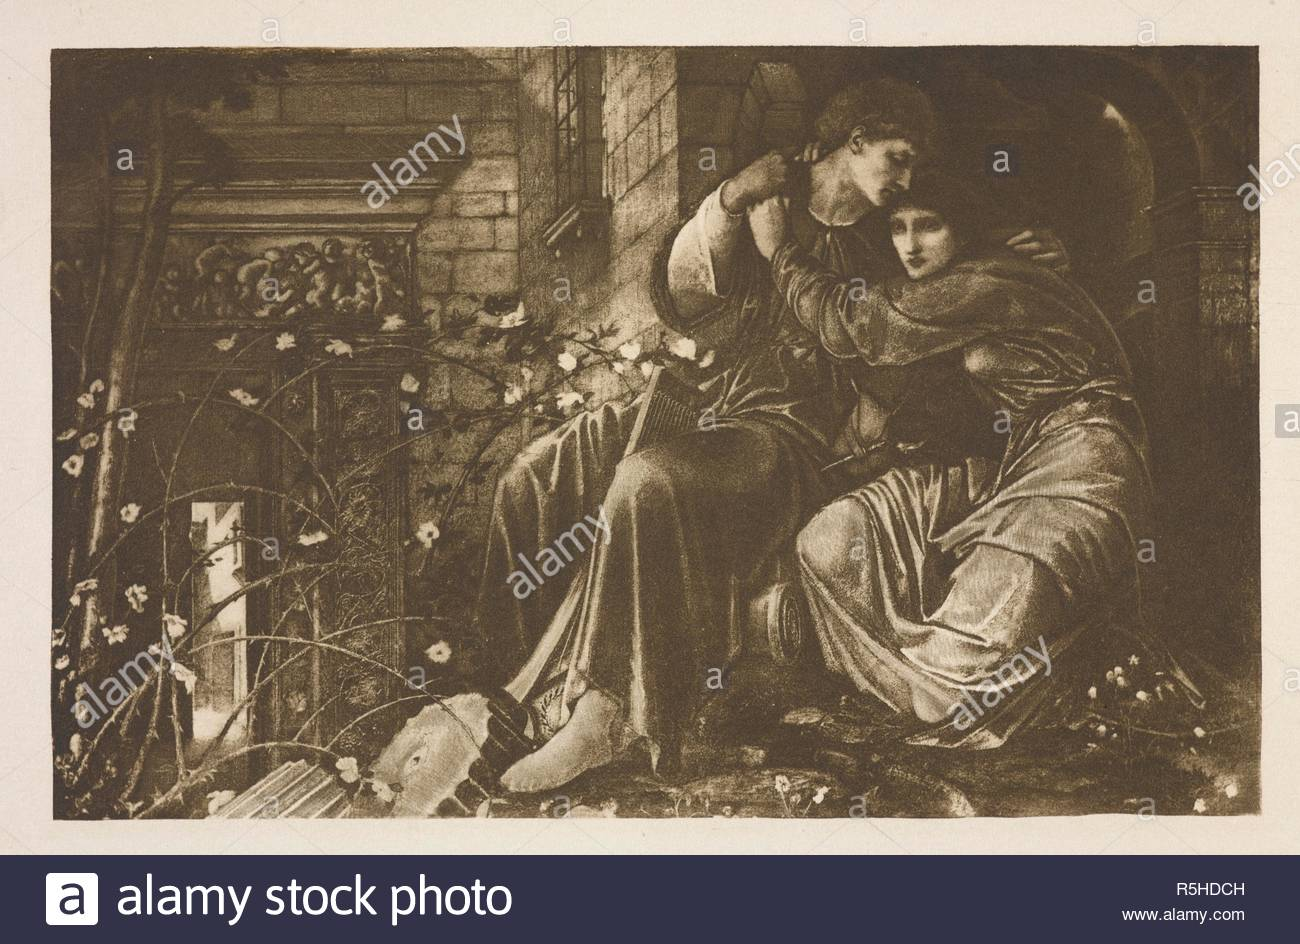 Love among the ruins.  Reproduction of the painting by the pre-Raphaelite artist Edward Burne-Jones. Edward Burne-Jones, a record and review. [With plates.]. London : G. Bell & Sons, 1892. Source: LR.404.a.6 plate opposite page 64. - Stock Image